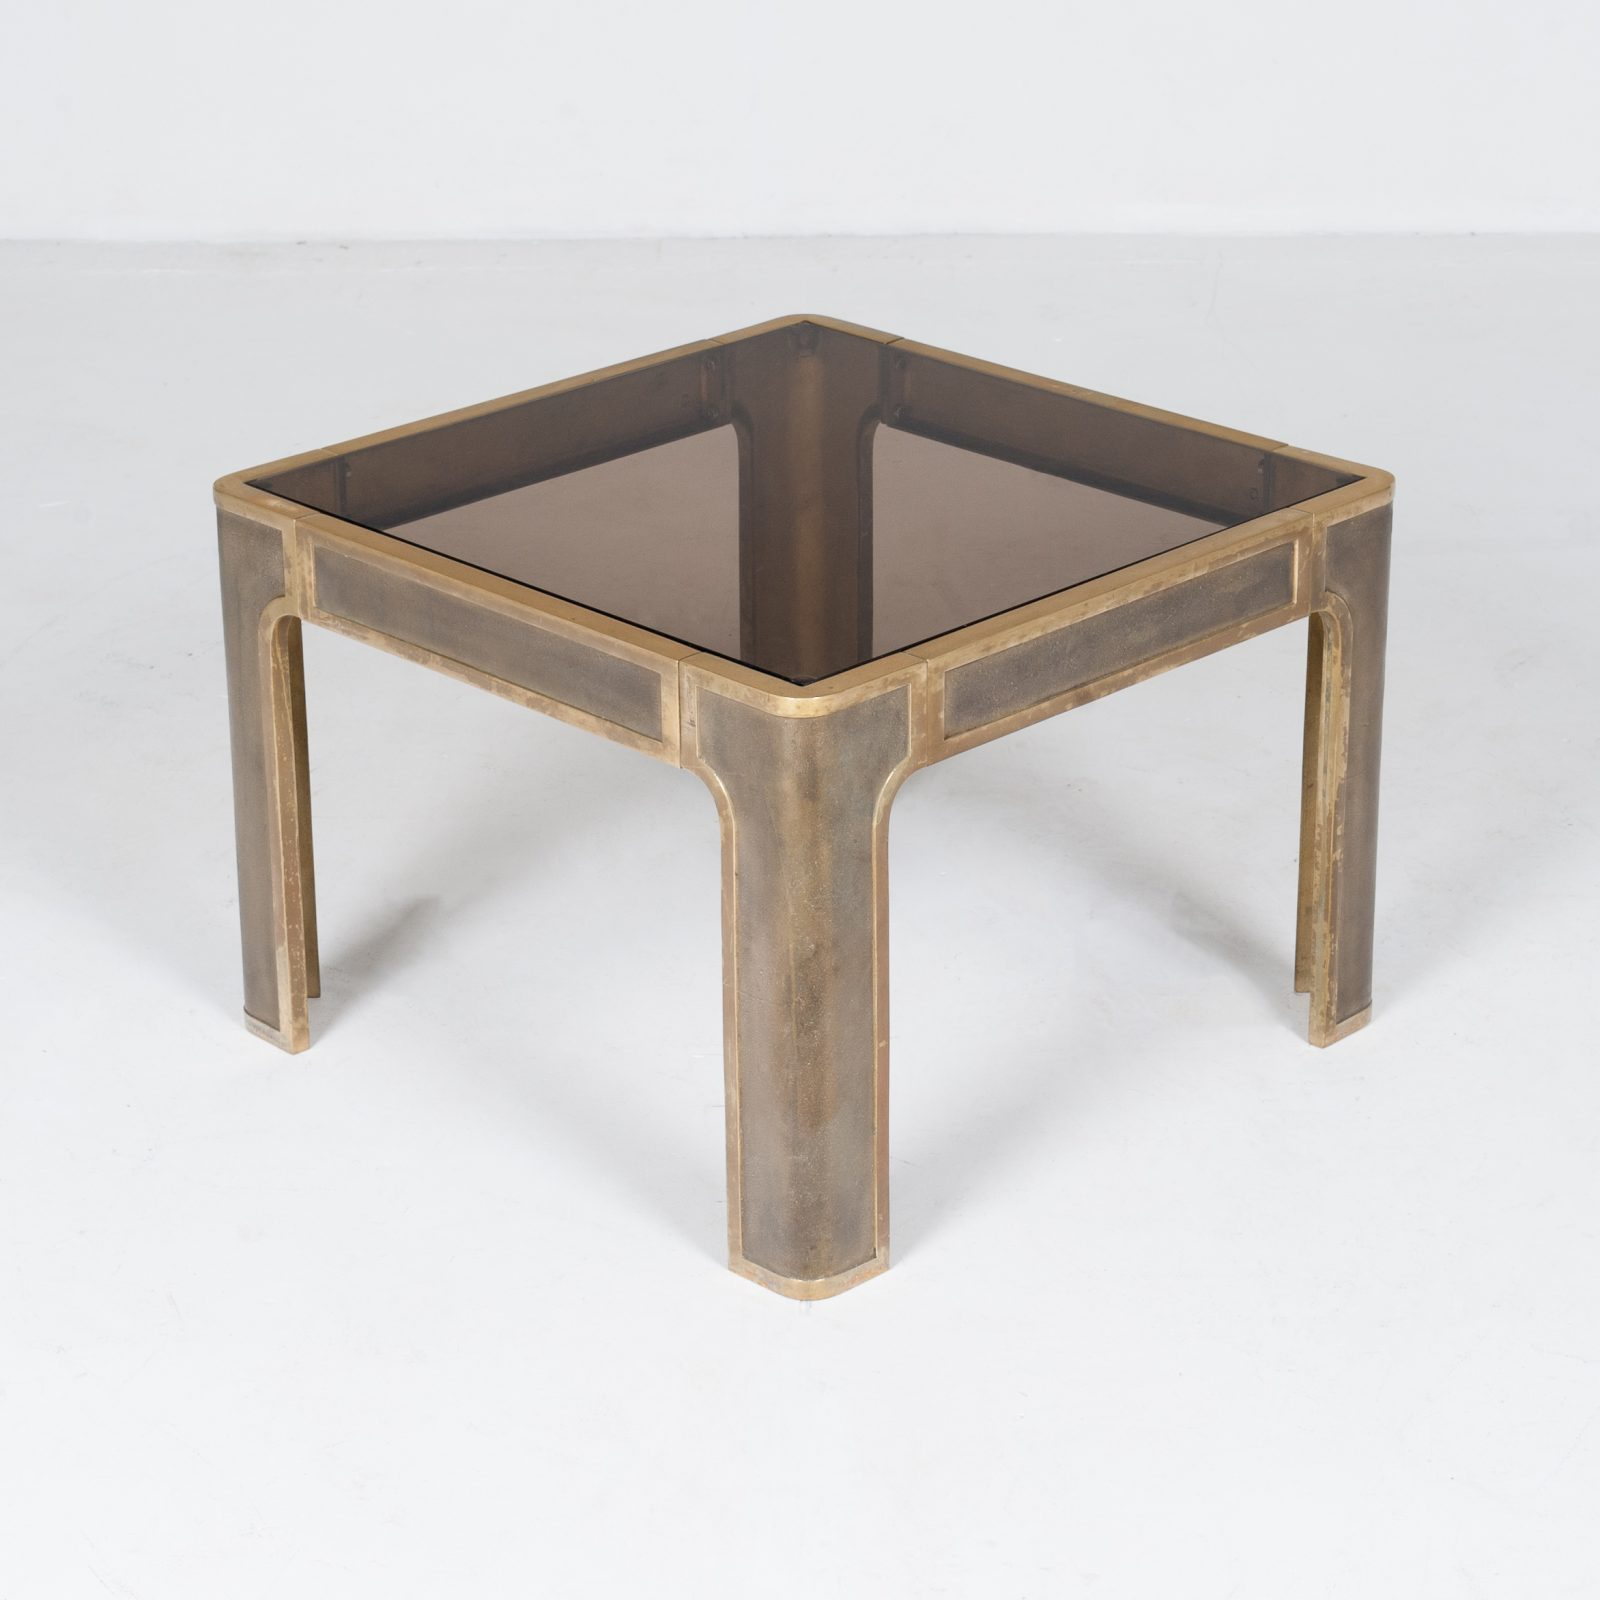 Square Coffee Table By Peter Ghyczy With Smoked Glass Top And Embossed Base, 1970s, The Netherlands897